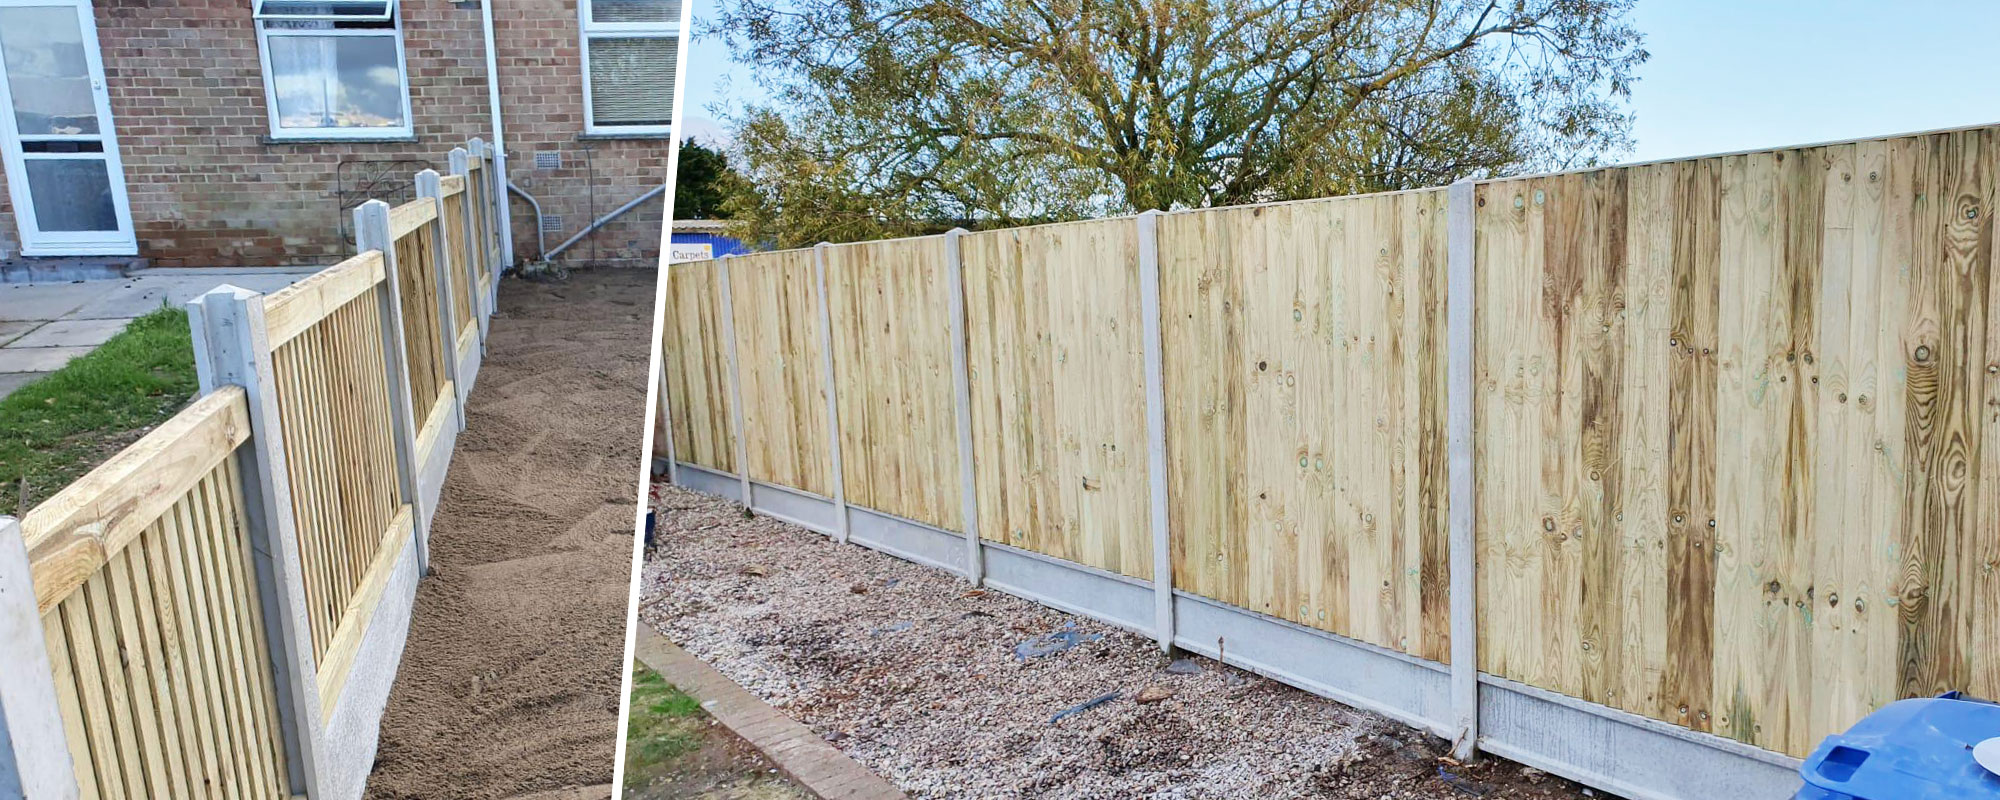 Fencing Services - Fencing which looks great and lasts for many years